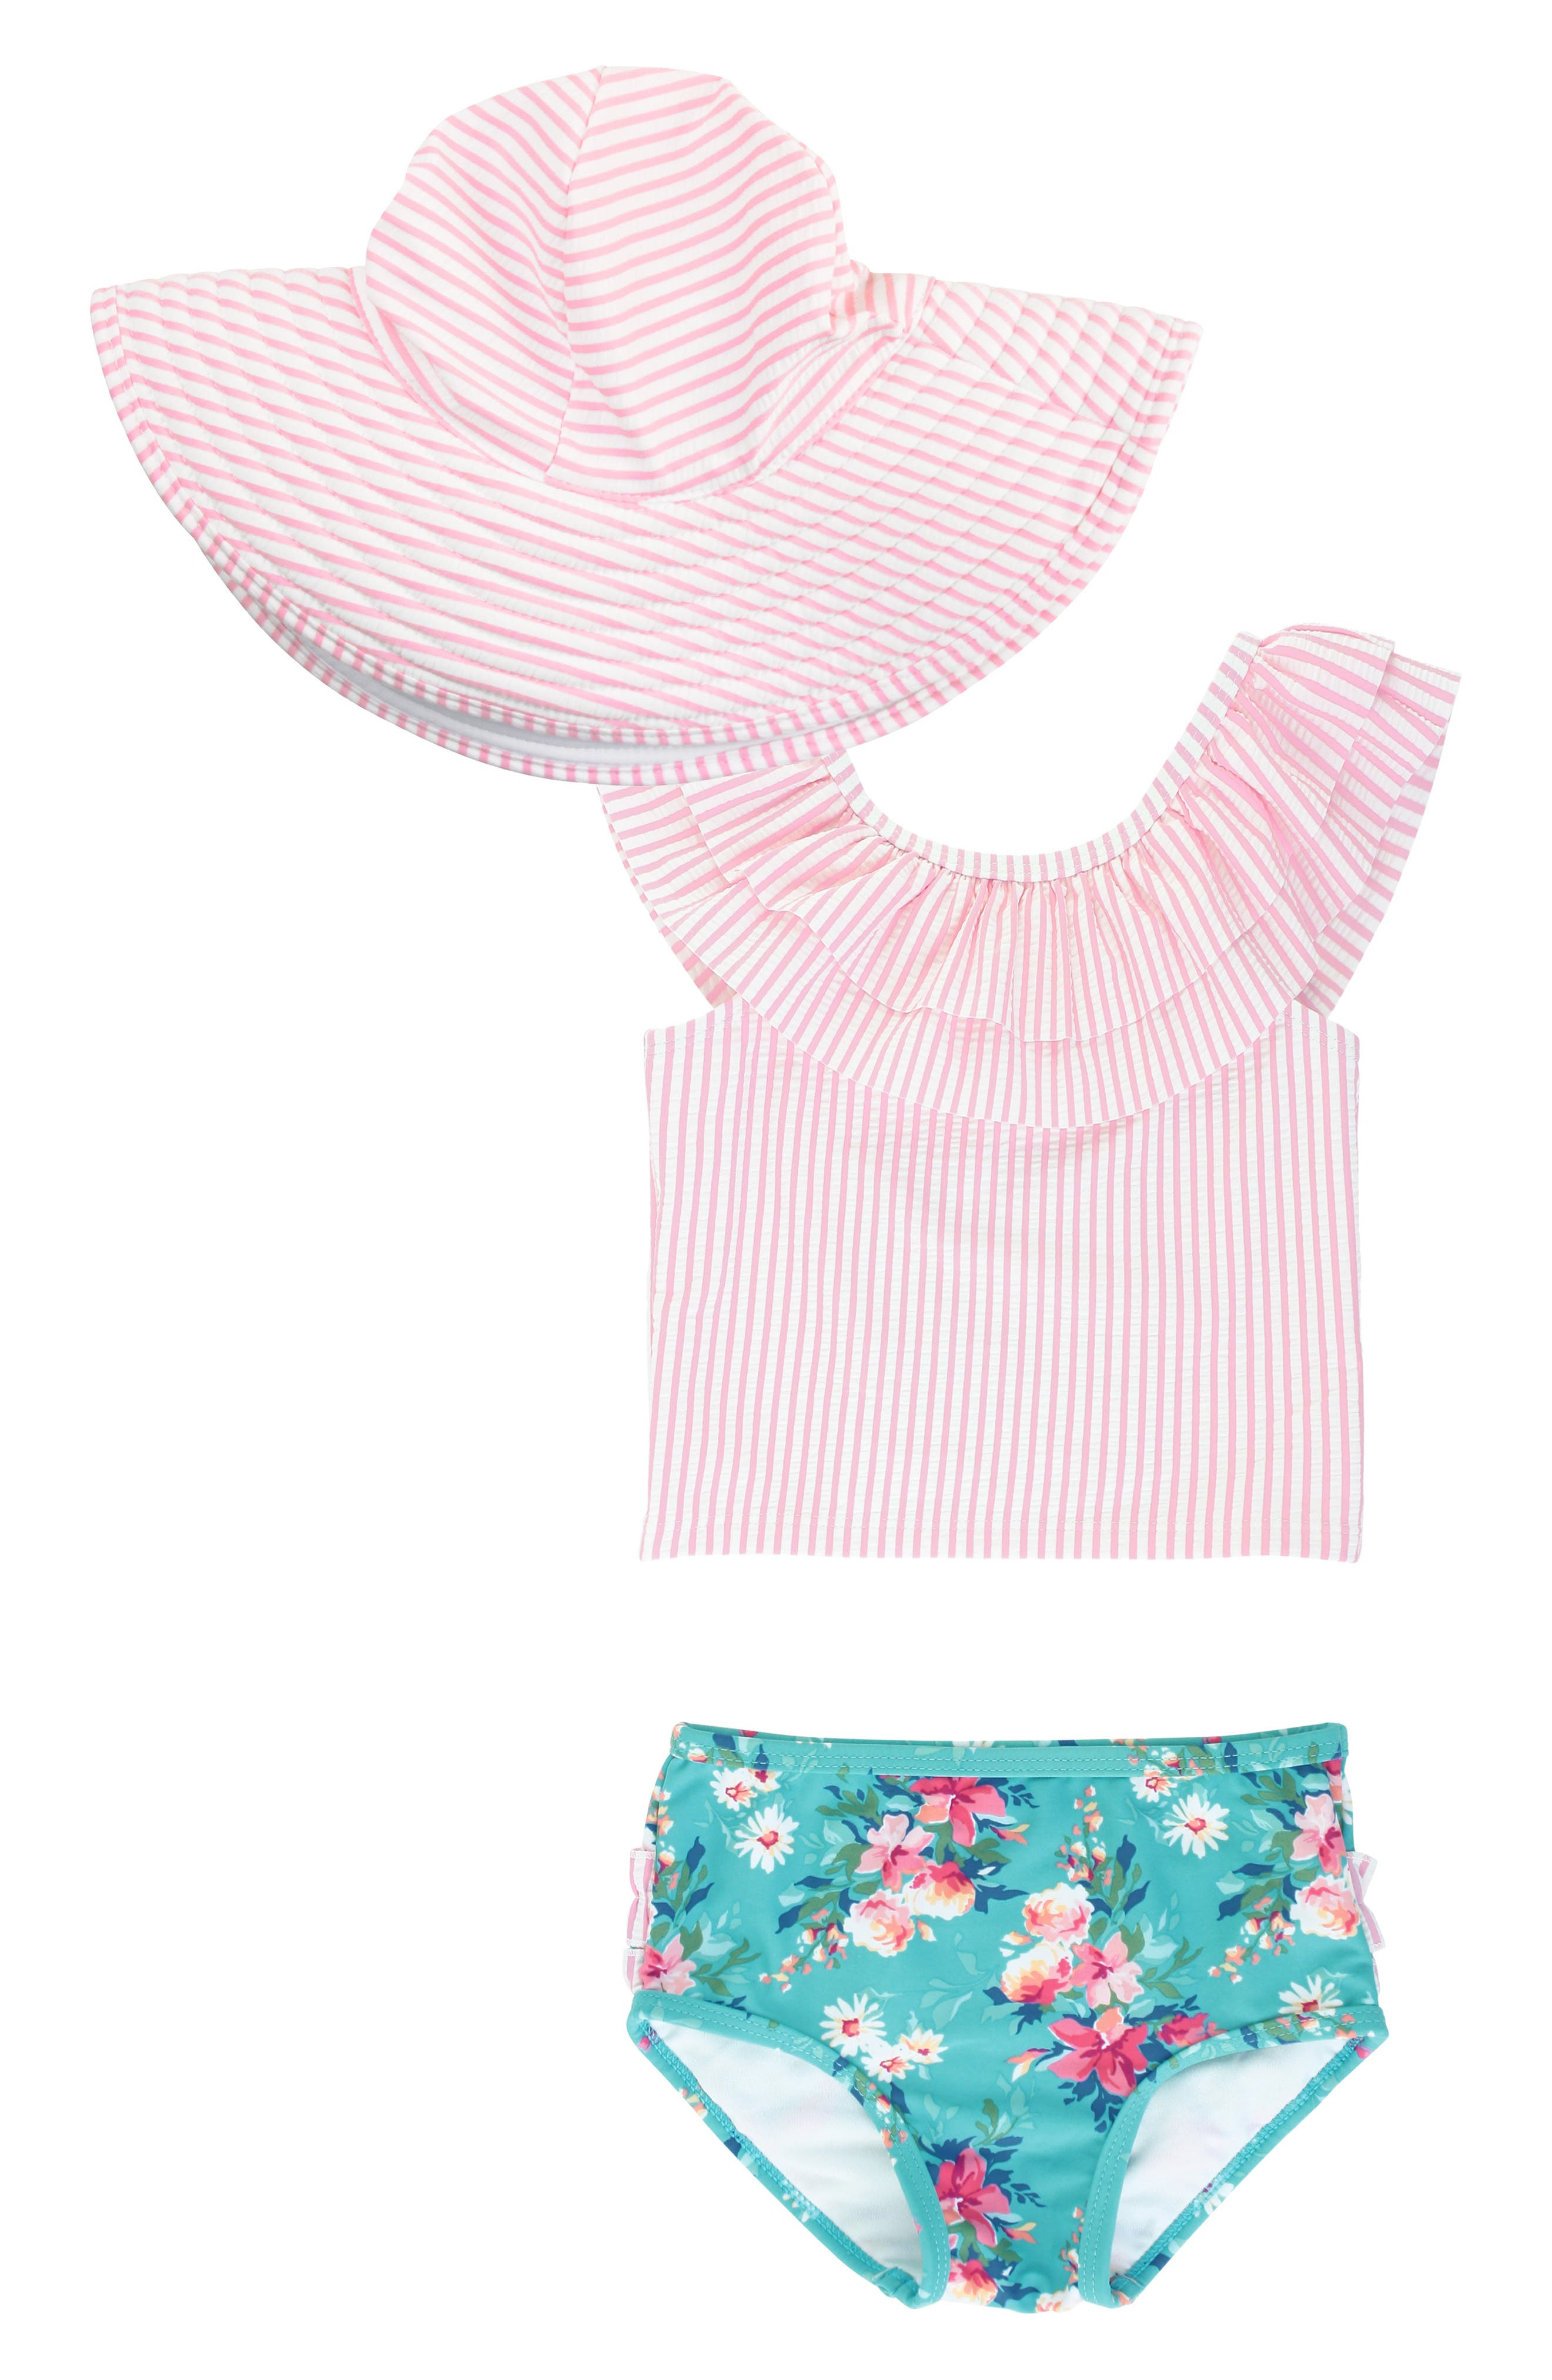 Bright seersucker stripes and ruffled trim add ample retro charm to a beach-ready tankini swimsuit paired with an adorable floppy hat for extra sun protection. Style Name: Rufflebutts Fancy Frill Two-Piece Swimsuit & Floppy Hat Set (Baby). Style Number: 5938576. Available in stores.